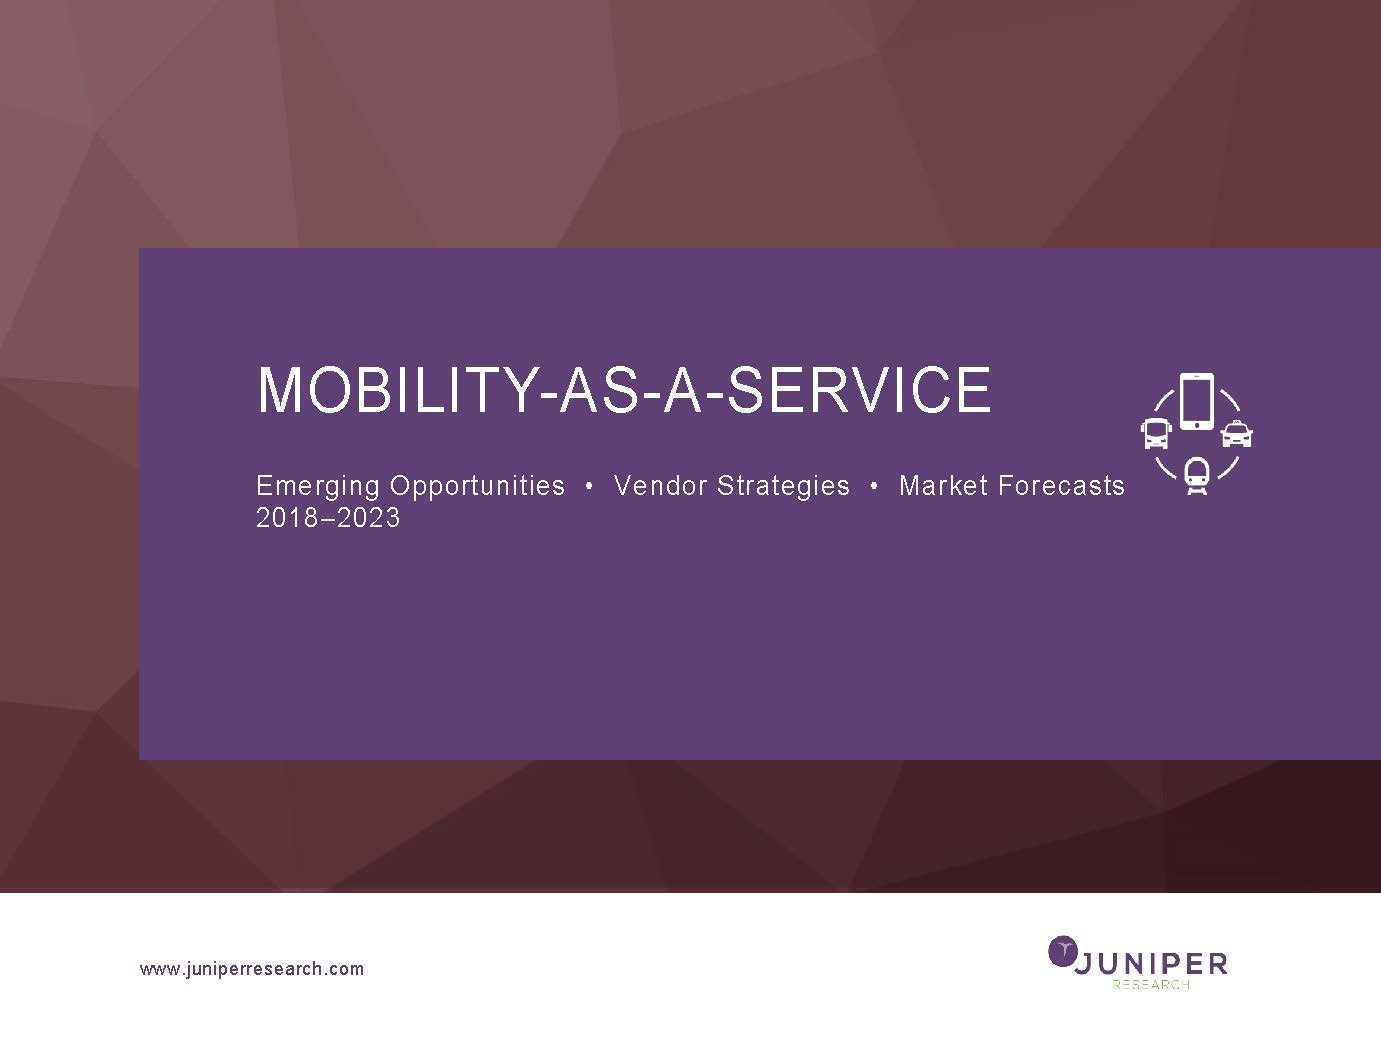 Mobility-as-a-Service: Emerging Opportunities, Vendor Strategies & Market Forecasts 2018-2023